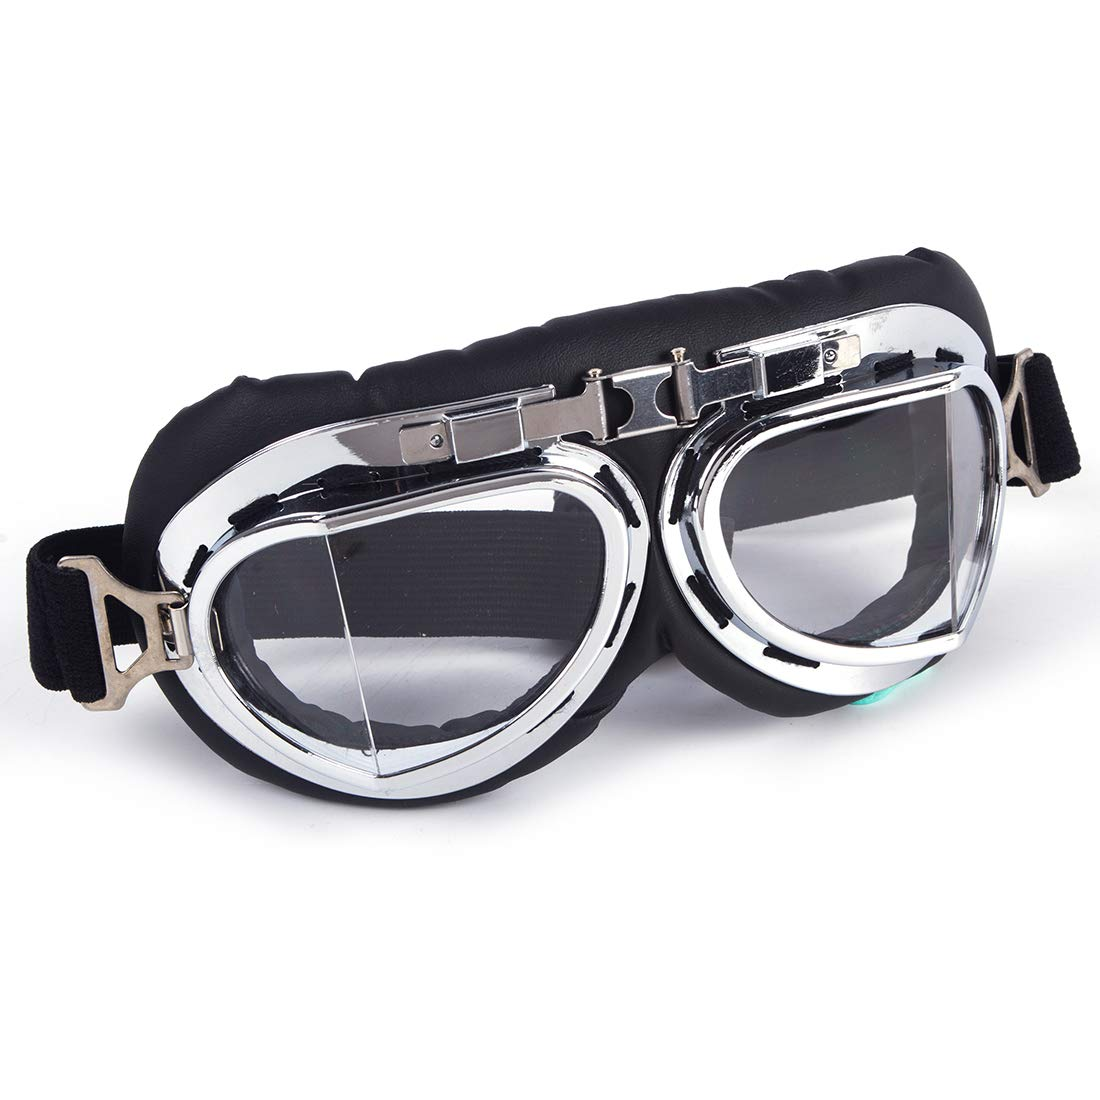 SAYFUT Sports Vintage Pilot Style Motorcycle Cruiser Scooter Goggle Silver Lens